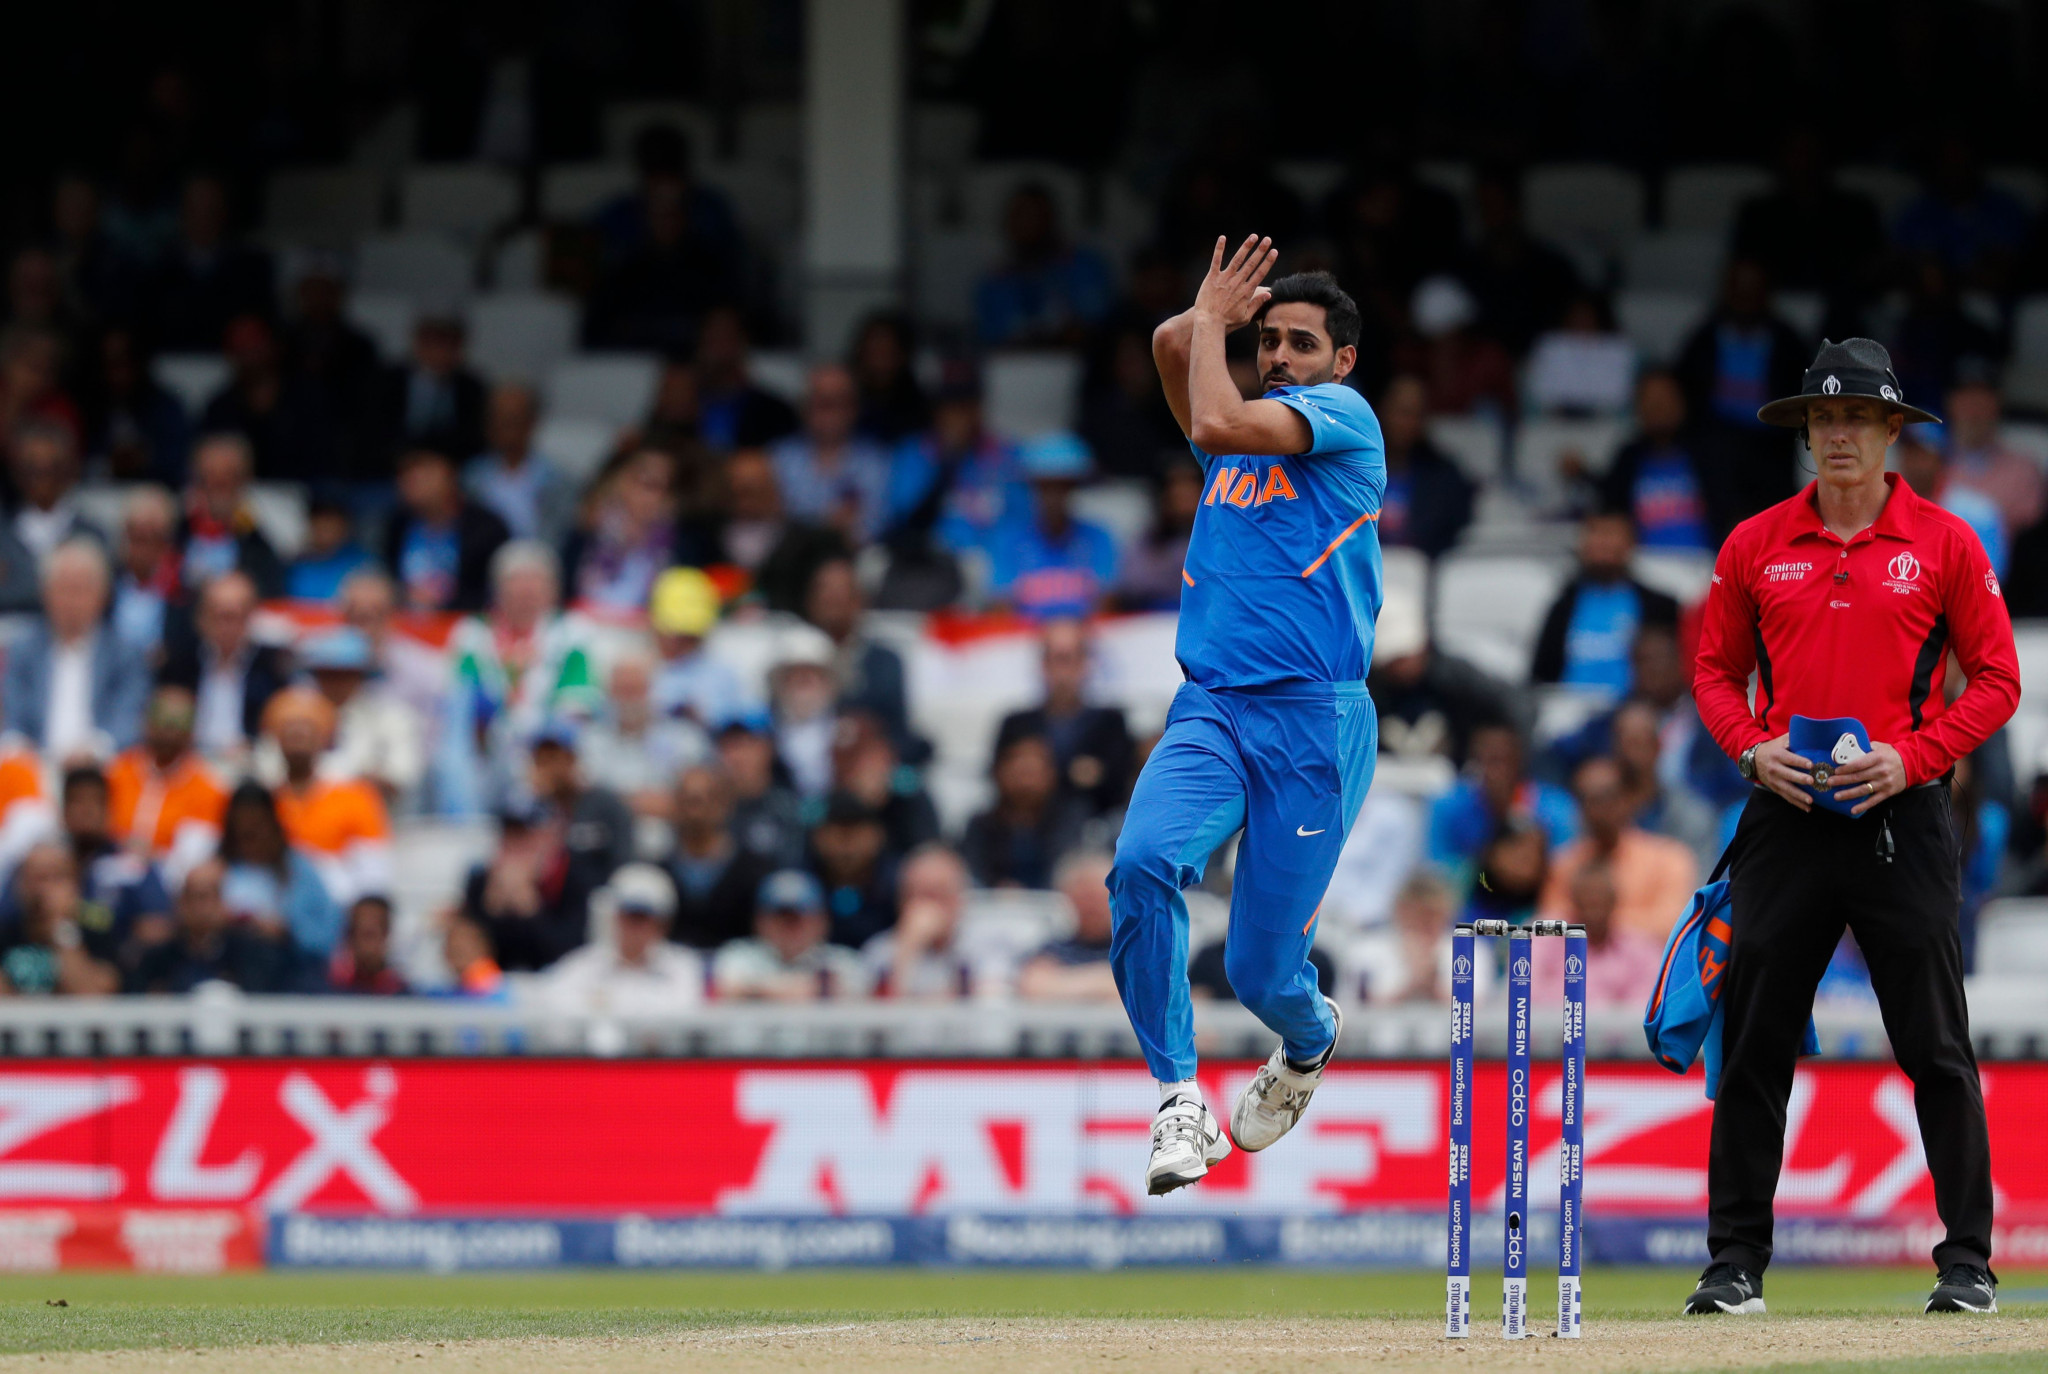 Bhuvneshwar Kumar took two wickets in an over to slow Australia's momentum ©Getty Images